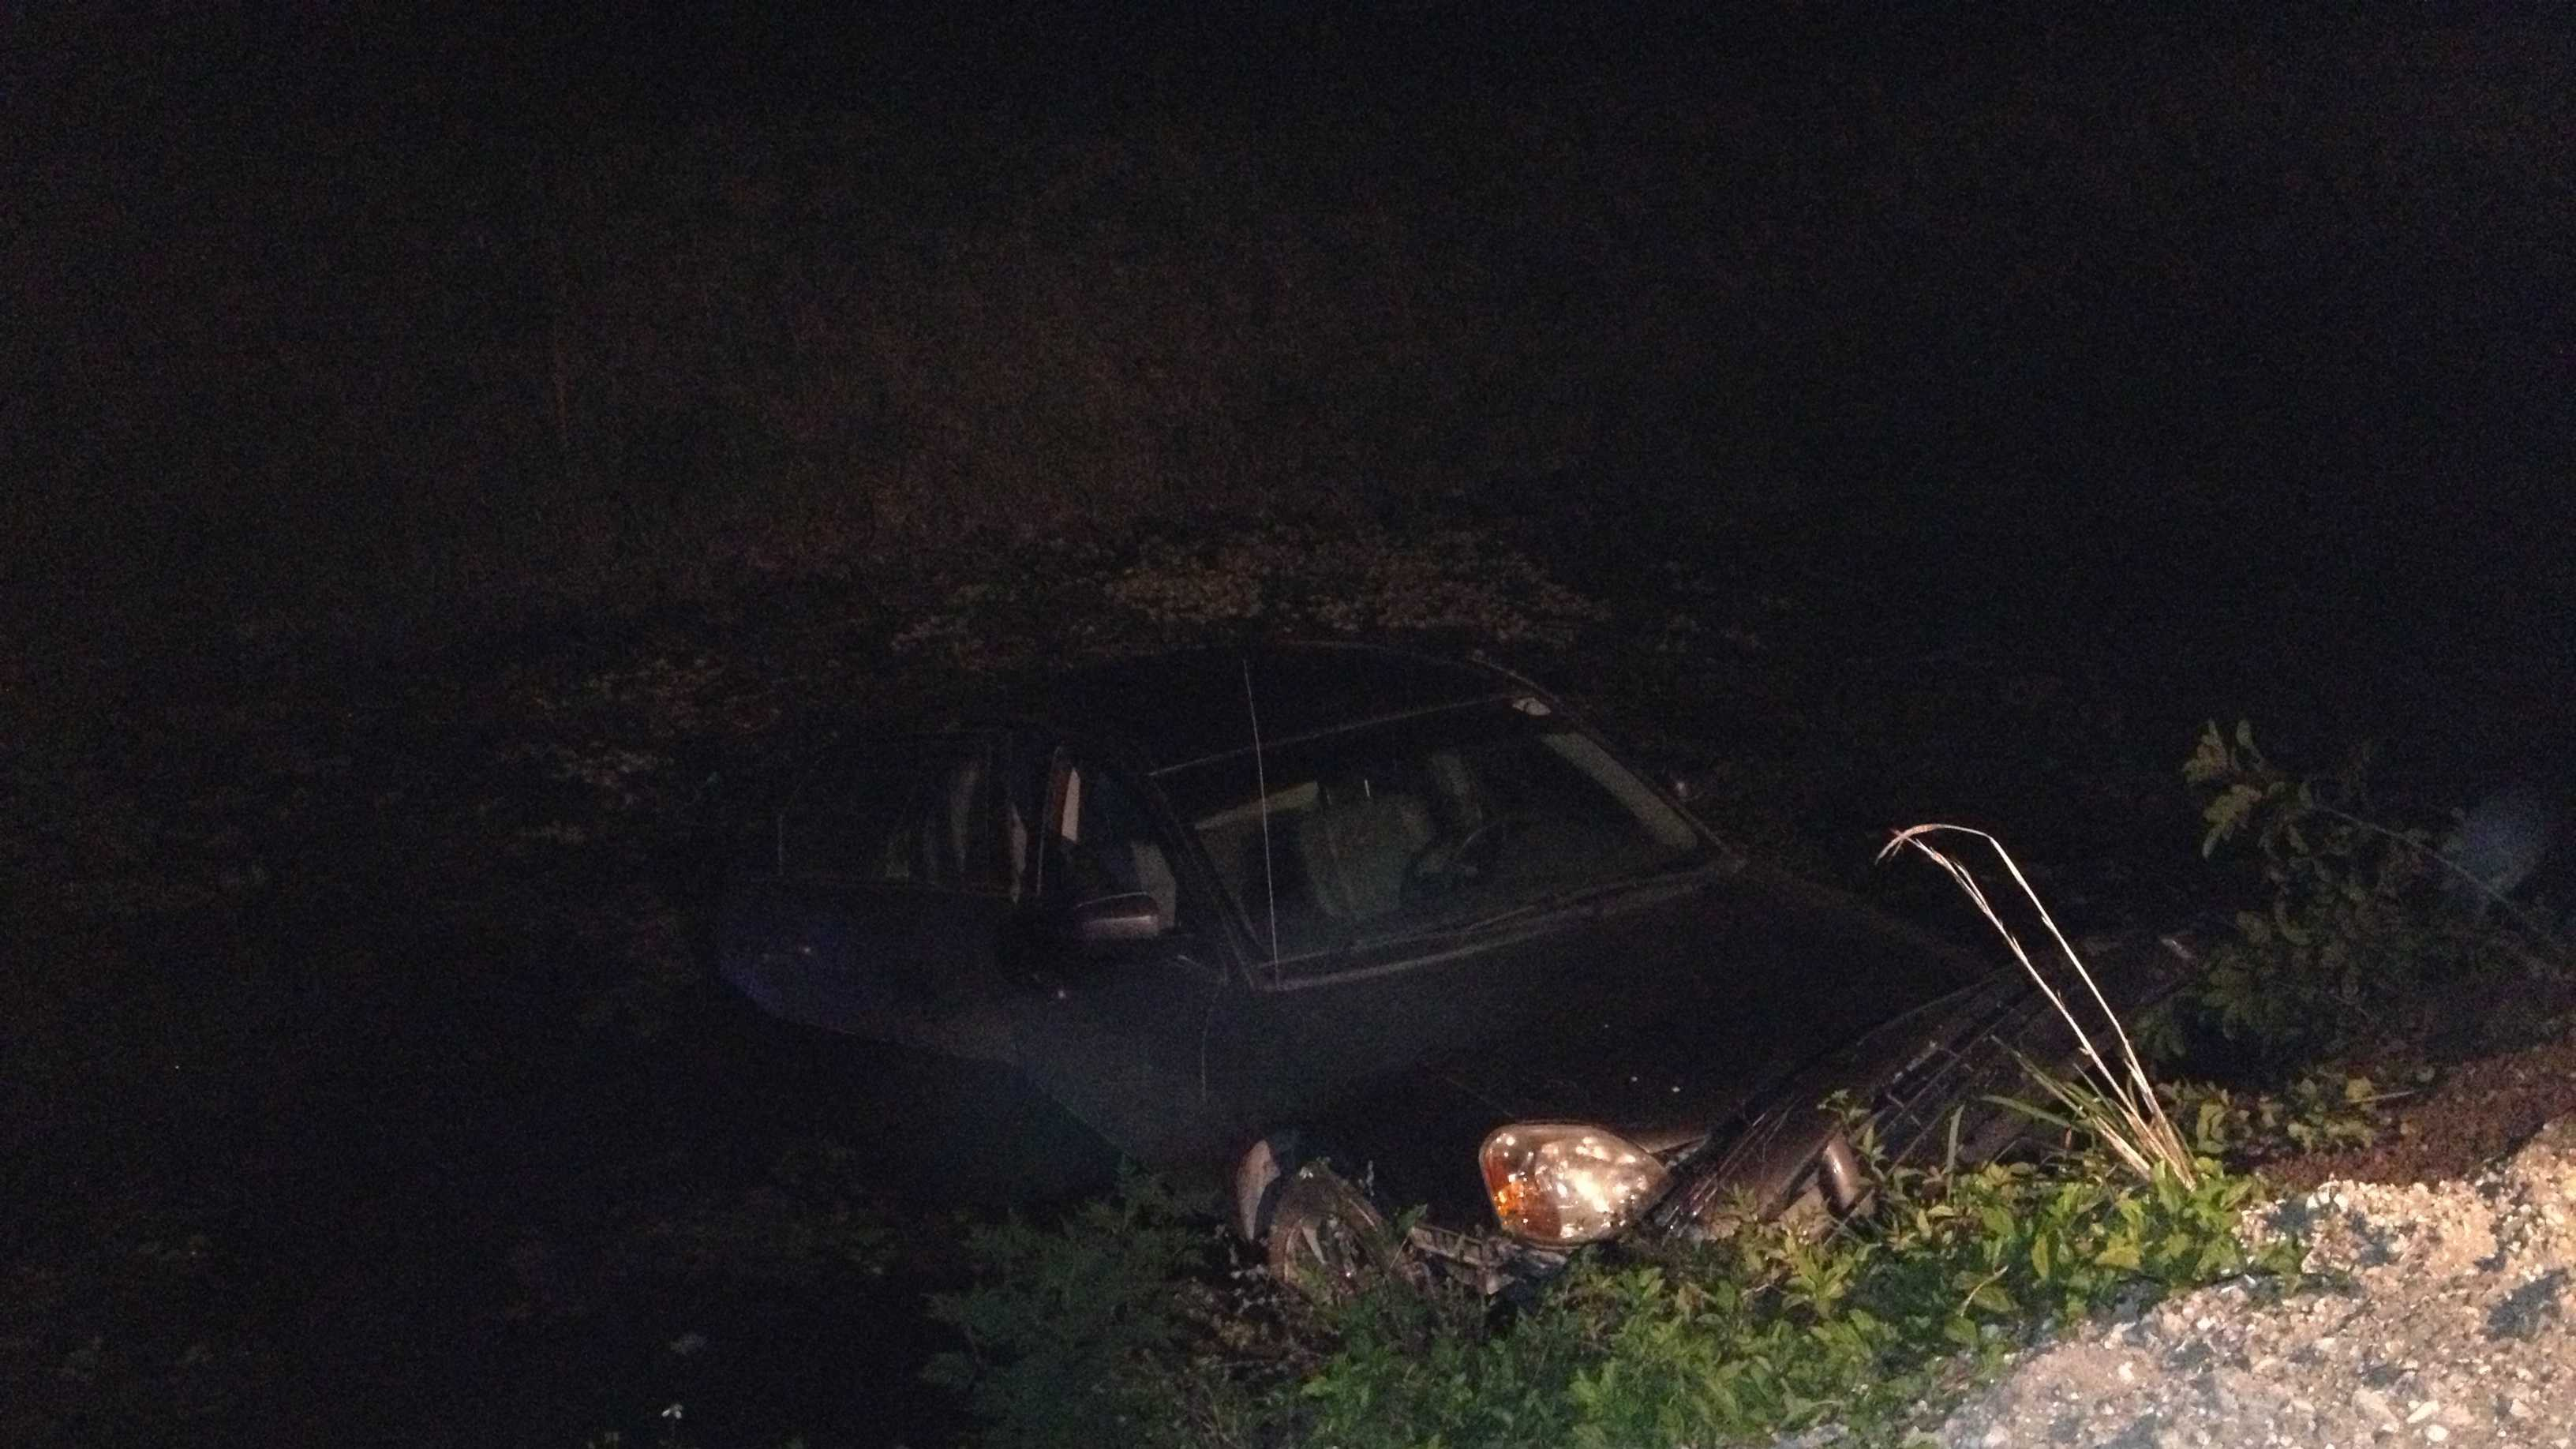 This car somehow landed in a canal in Loxahatchee, but both women inside were able to get out safely.